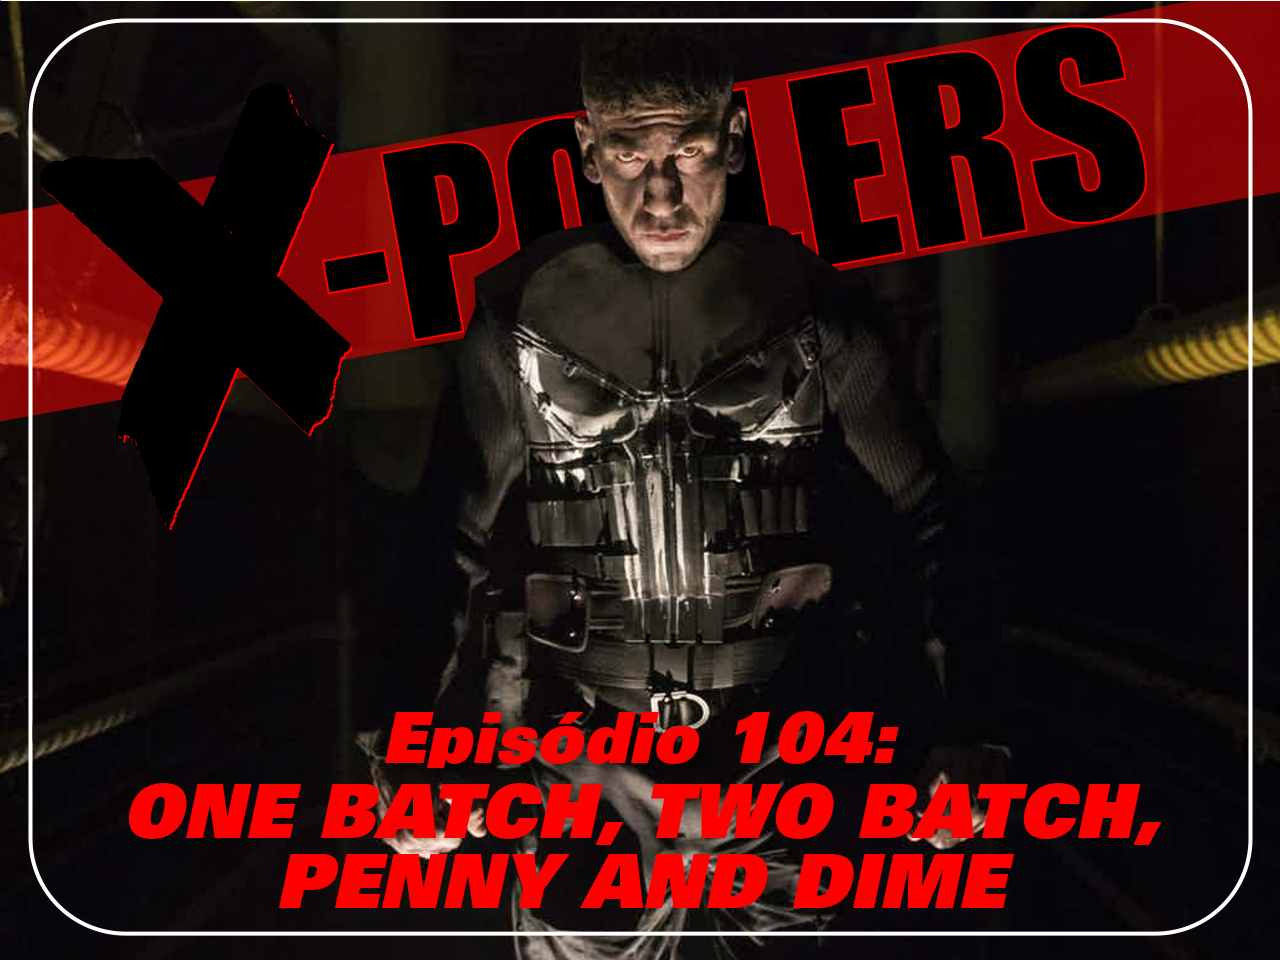 One batch, two batch, penny and dime